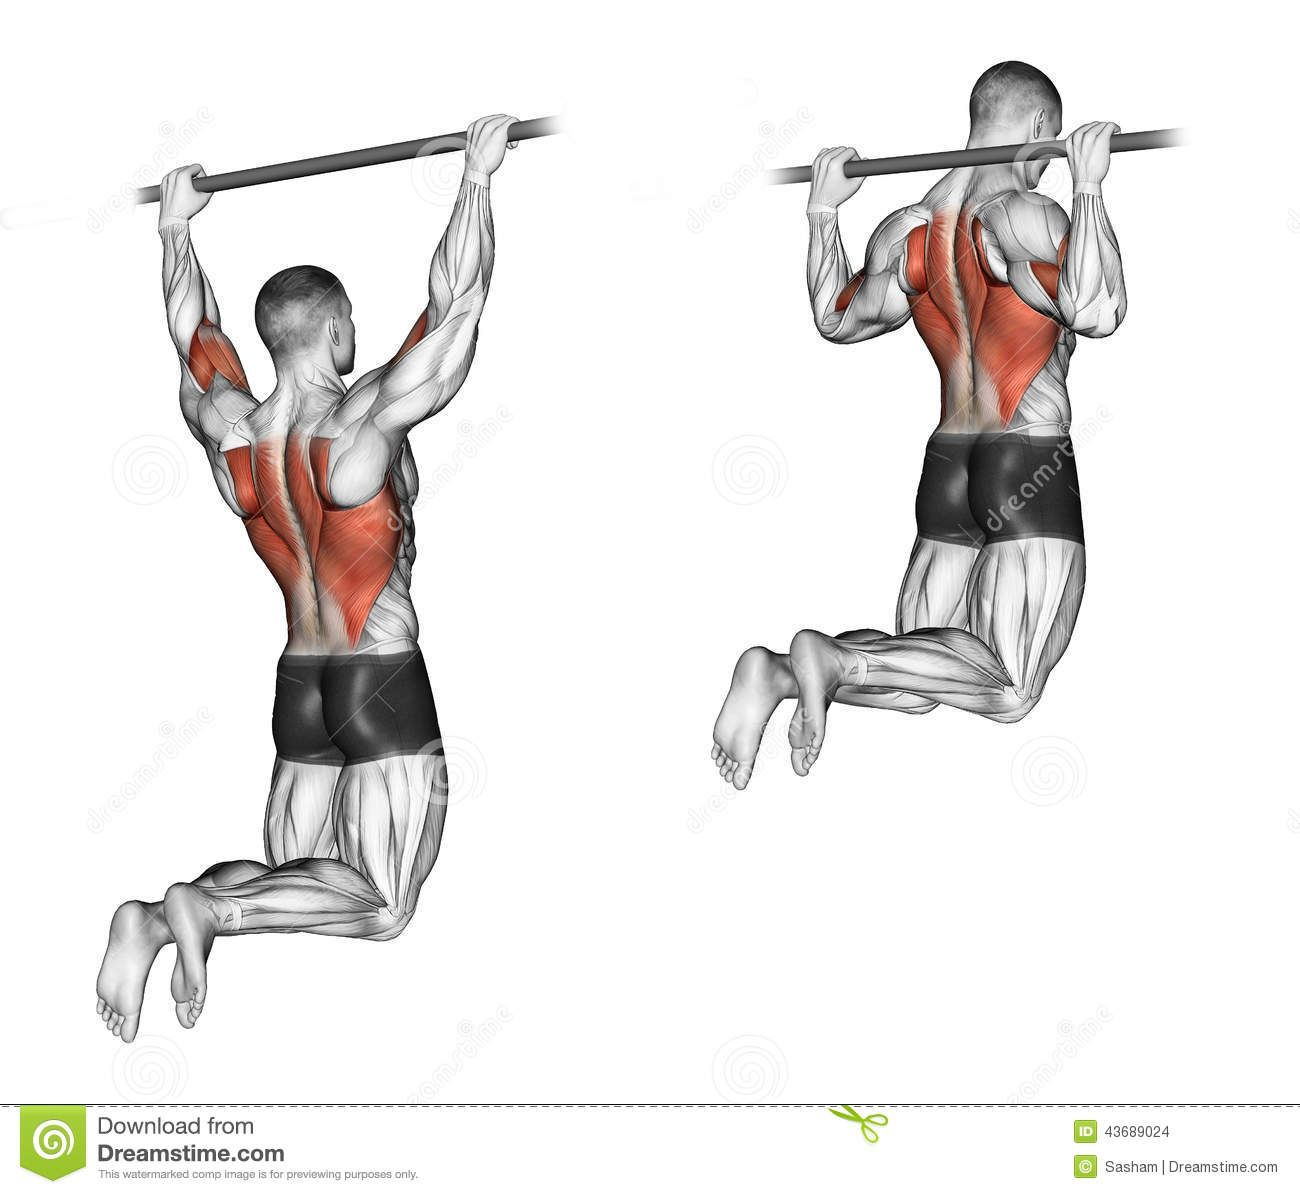 Pull Ups Muscles Worked 77777 | IMGFLASH